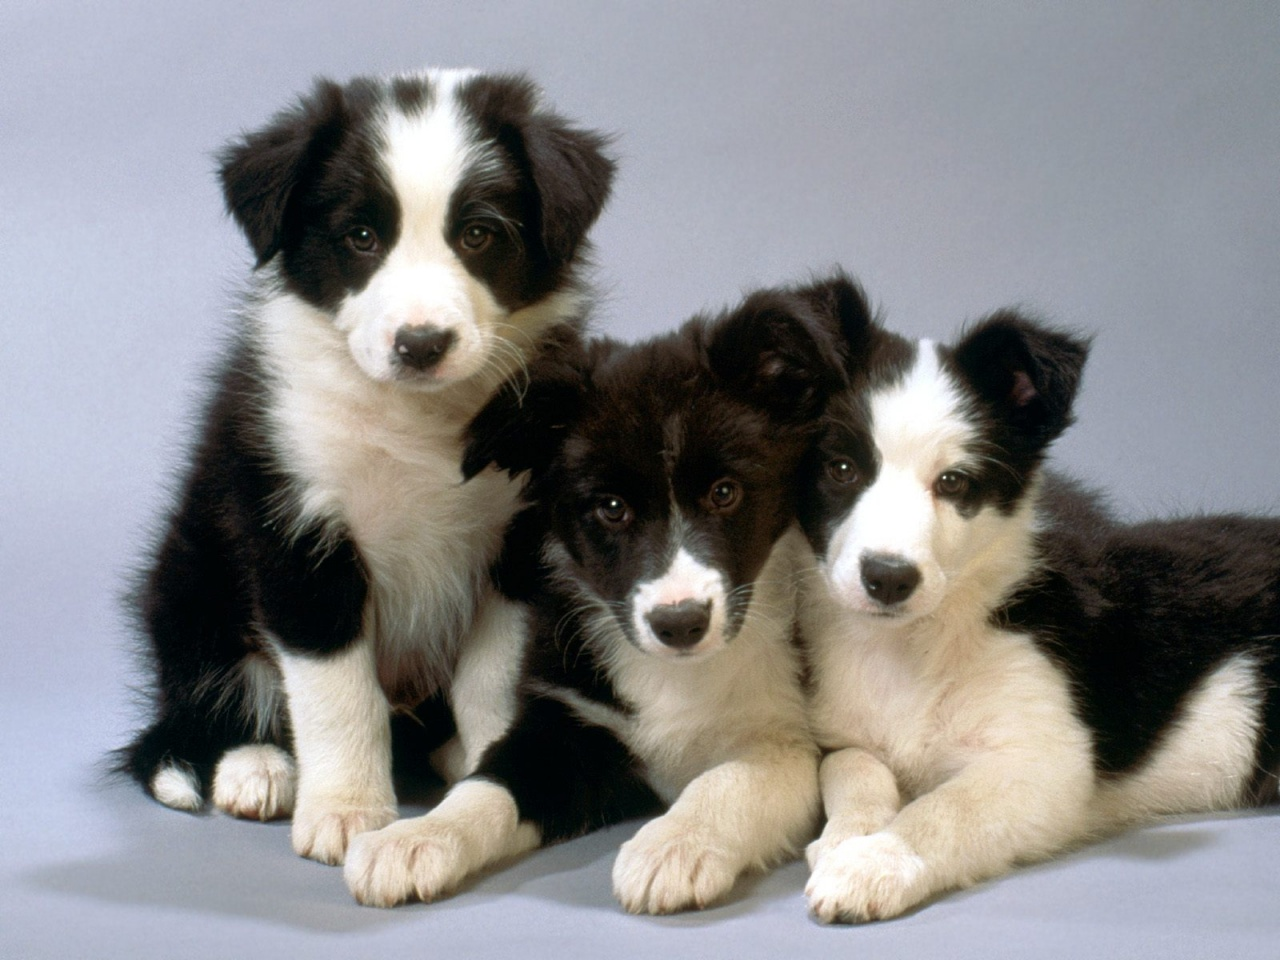 http://3.bp.blogspot.com/-wF3AM6wwiSA/UH09964XOlI/AAAAAAAAHMQ/RfLu4ruPcUg/s1600/34border_collie_puppies_wallpaper.jpg